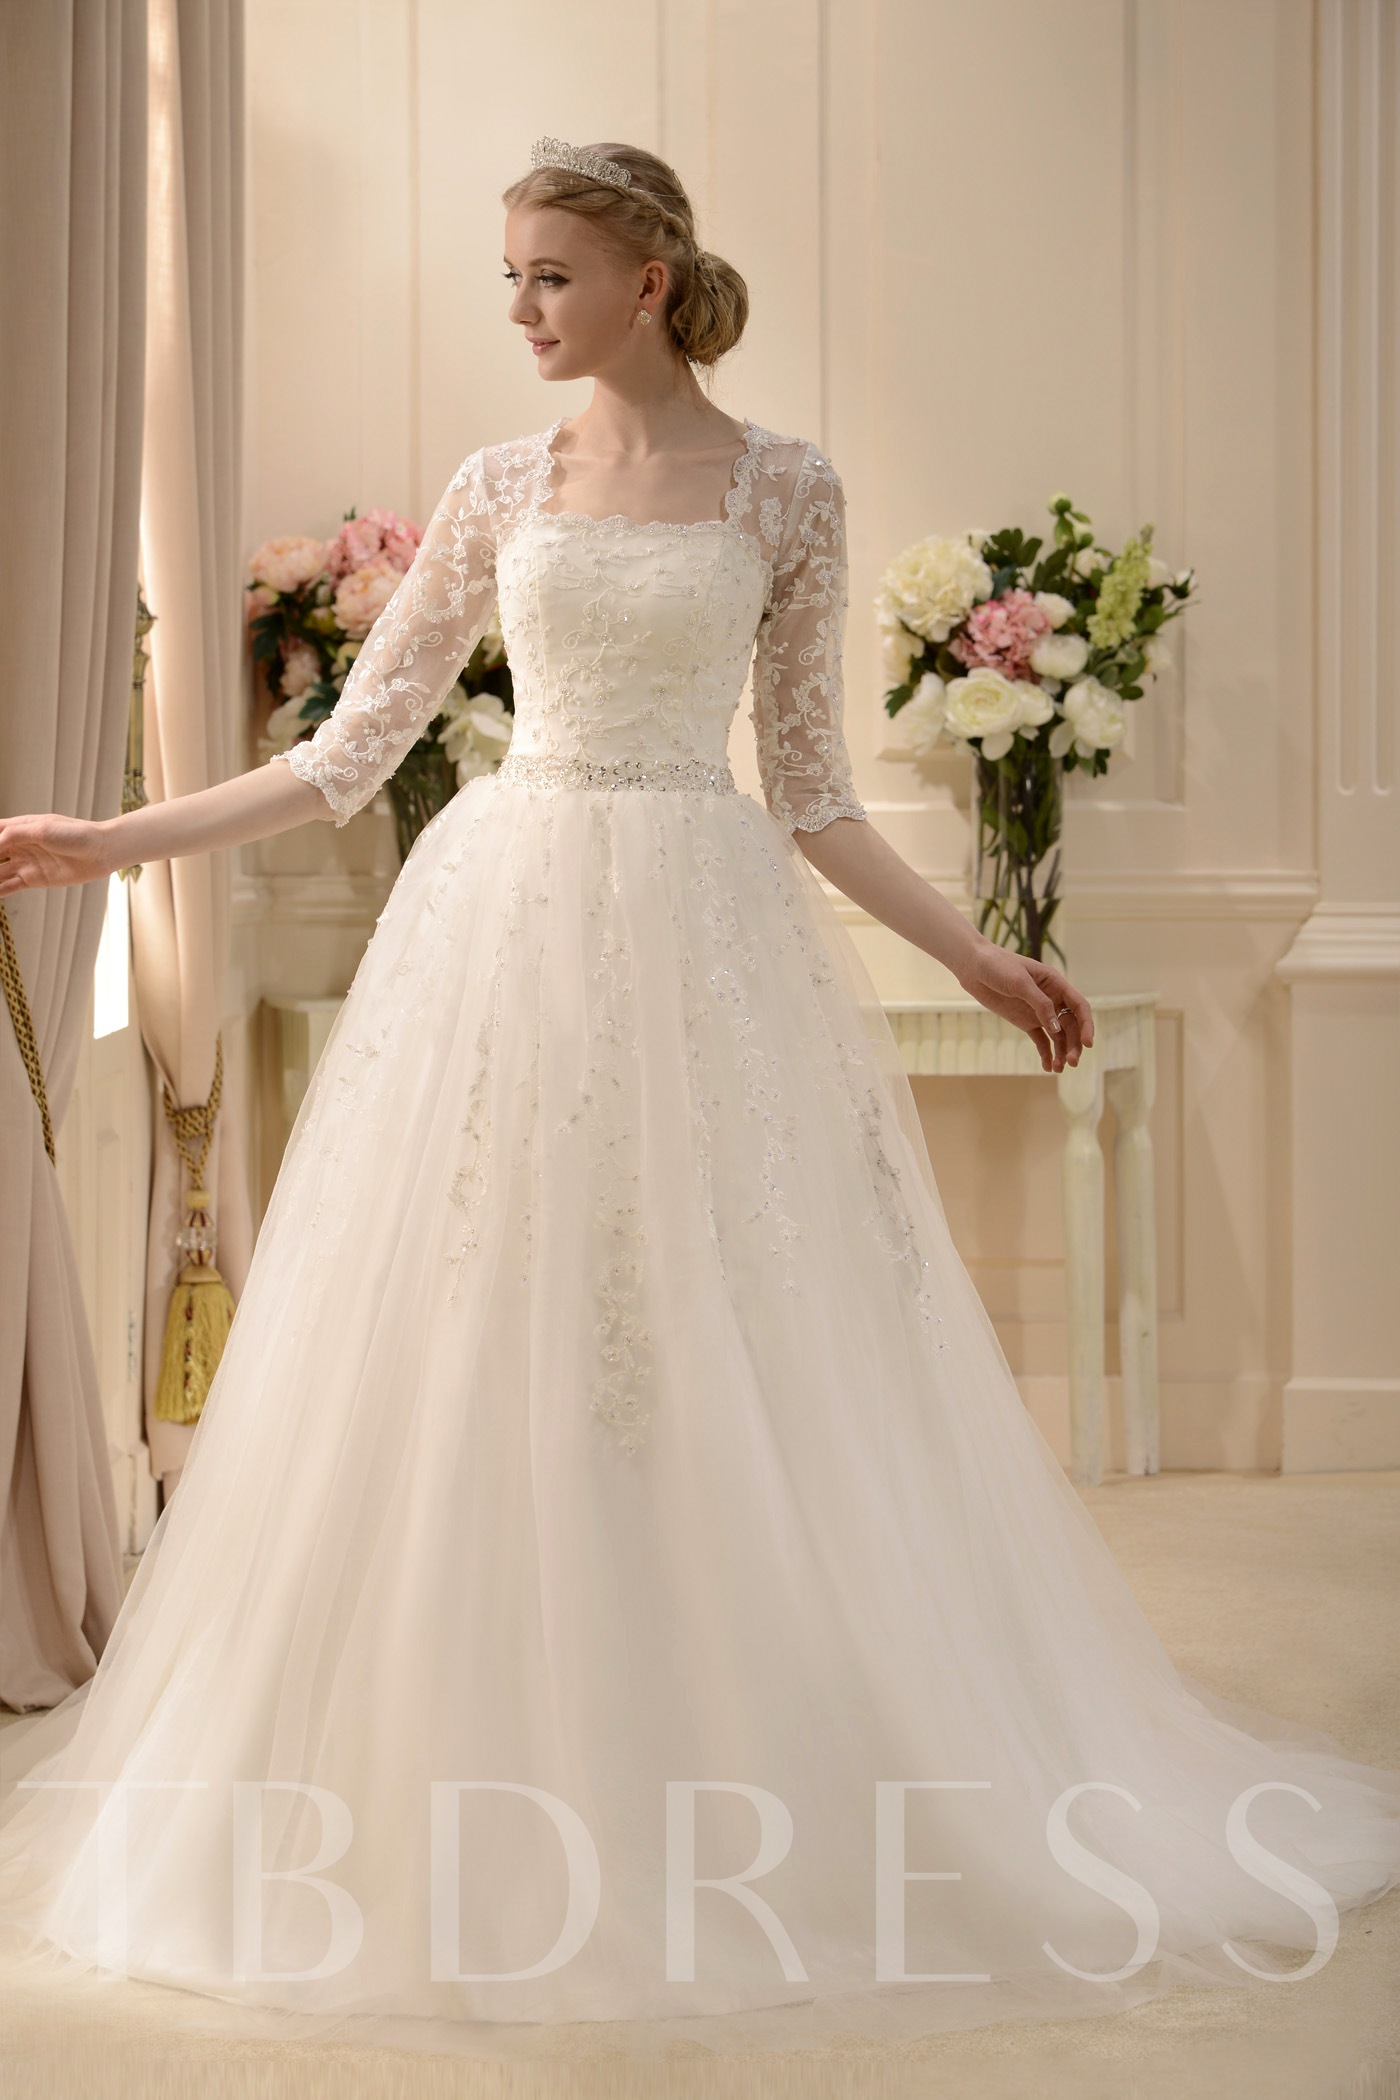 Image of A-Line Square Neck 3/4-Length Sleeves Beaded Wedding Dress